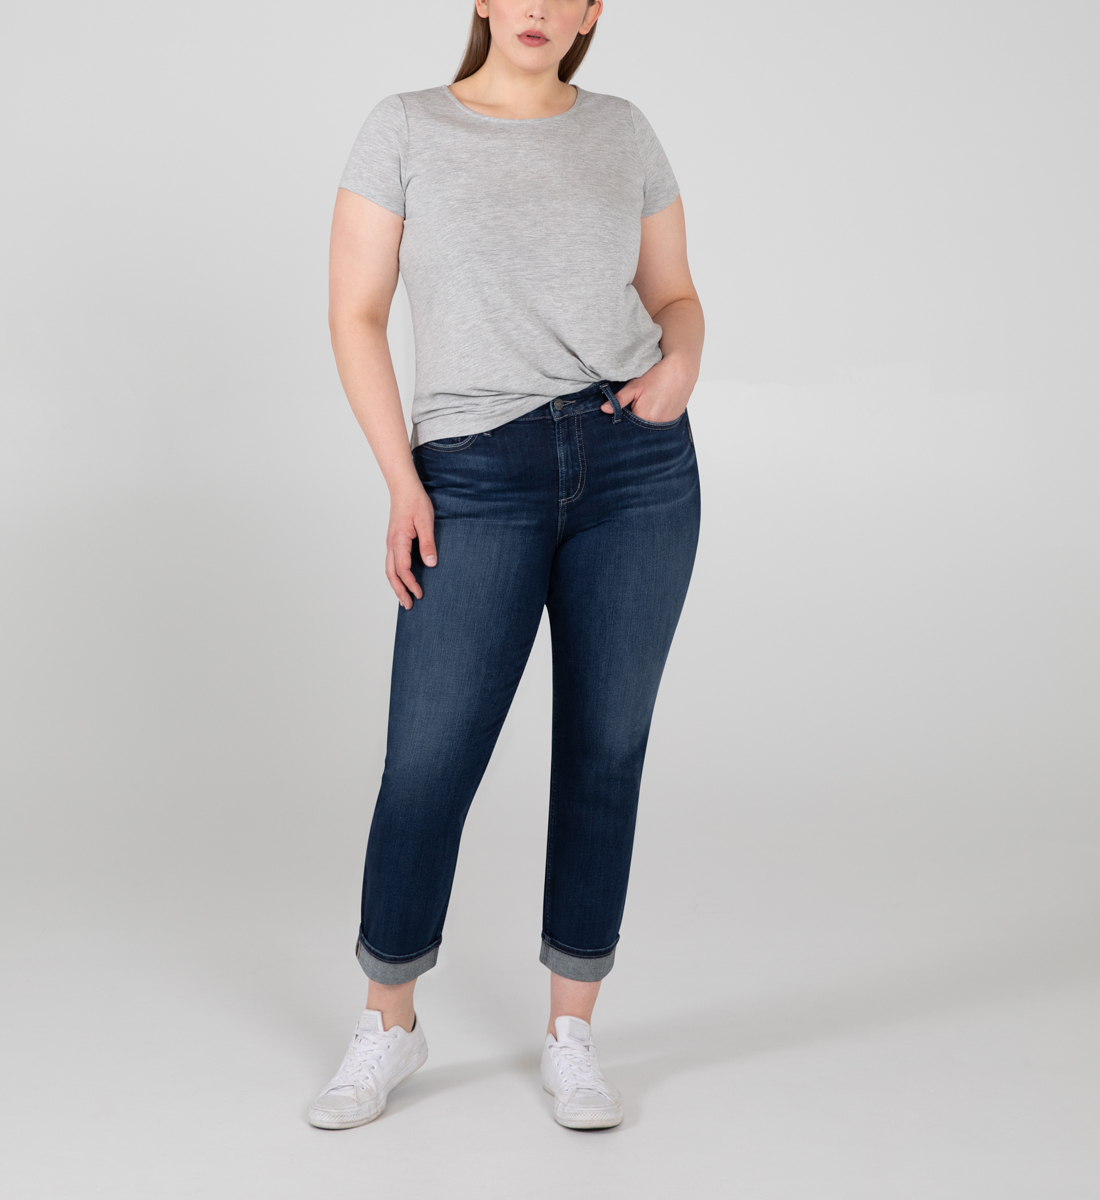 Silver Jeans Avery High Rise Straight Crop Jeans Plus Size